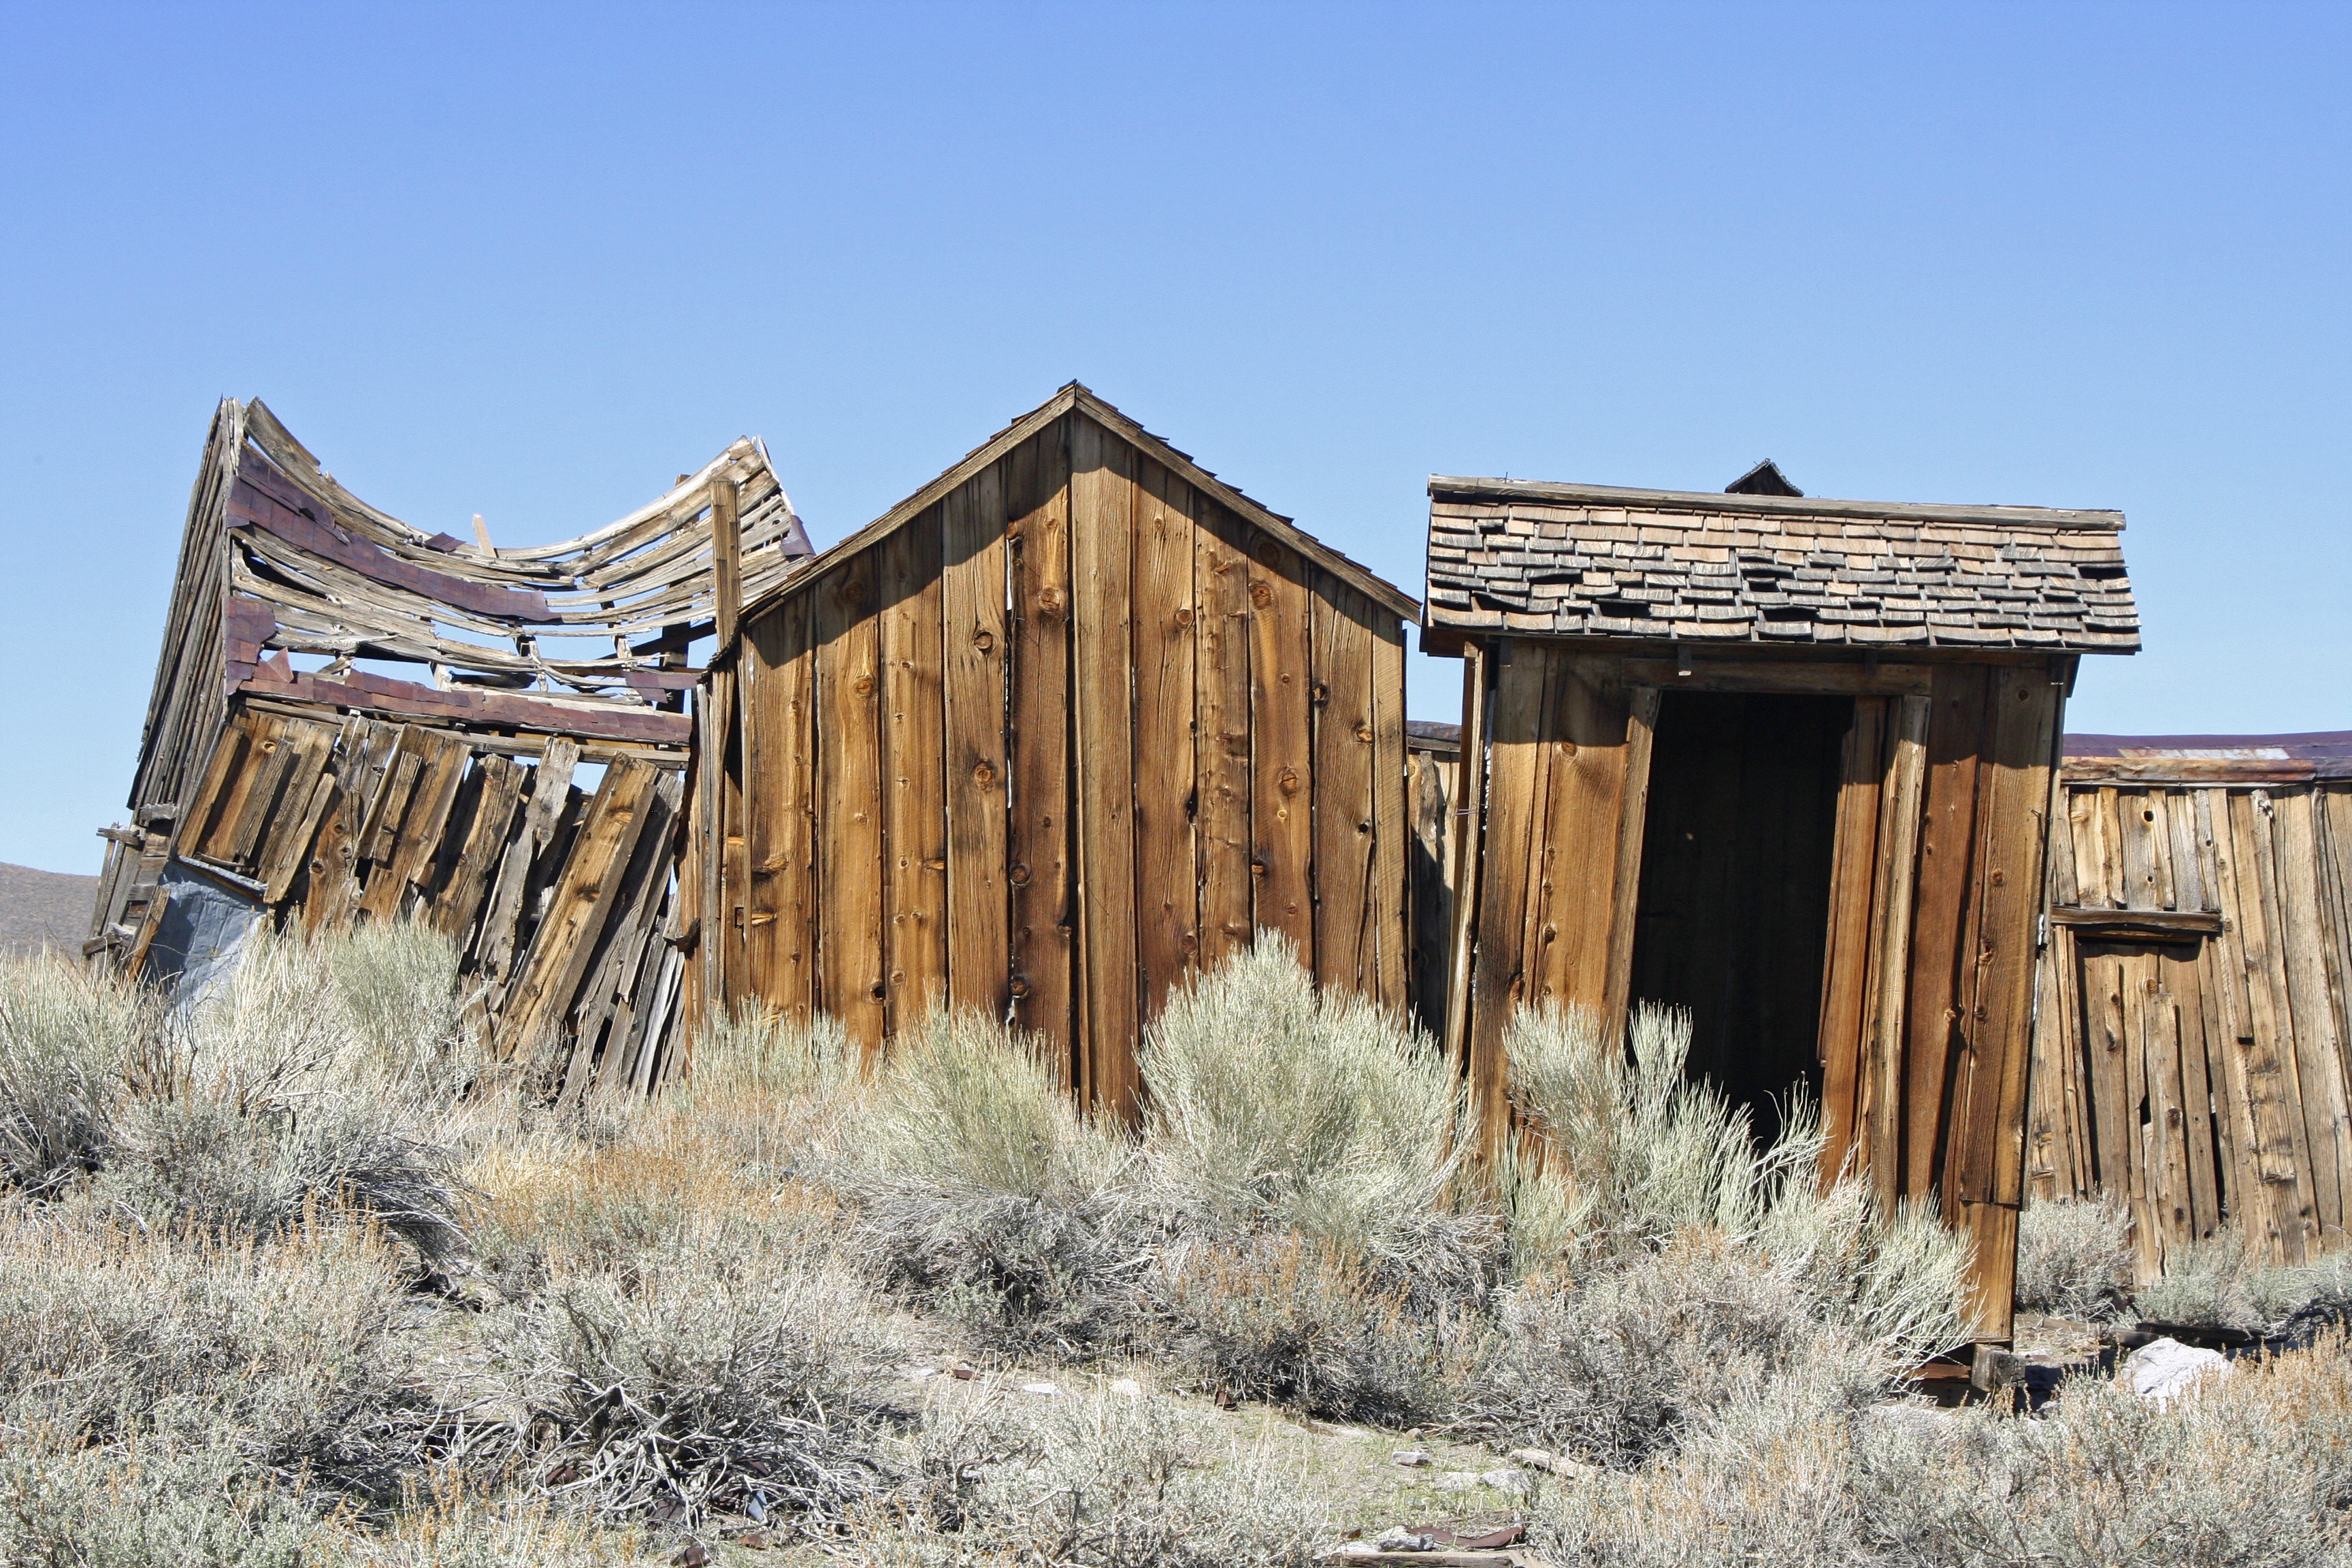 May: Weathered buildings at Bodie State Historical Park, a ghost town in Eastern California.